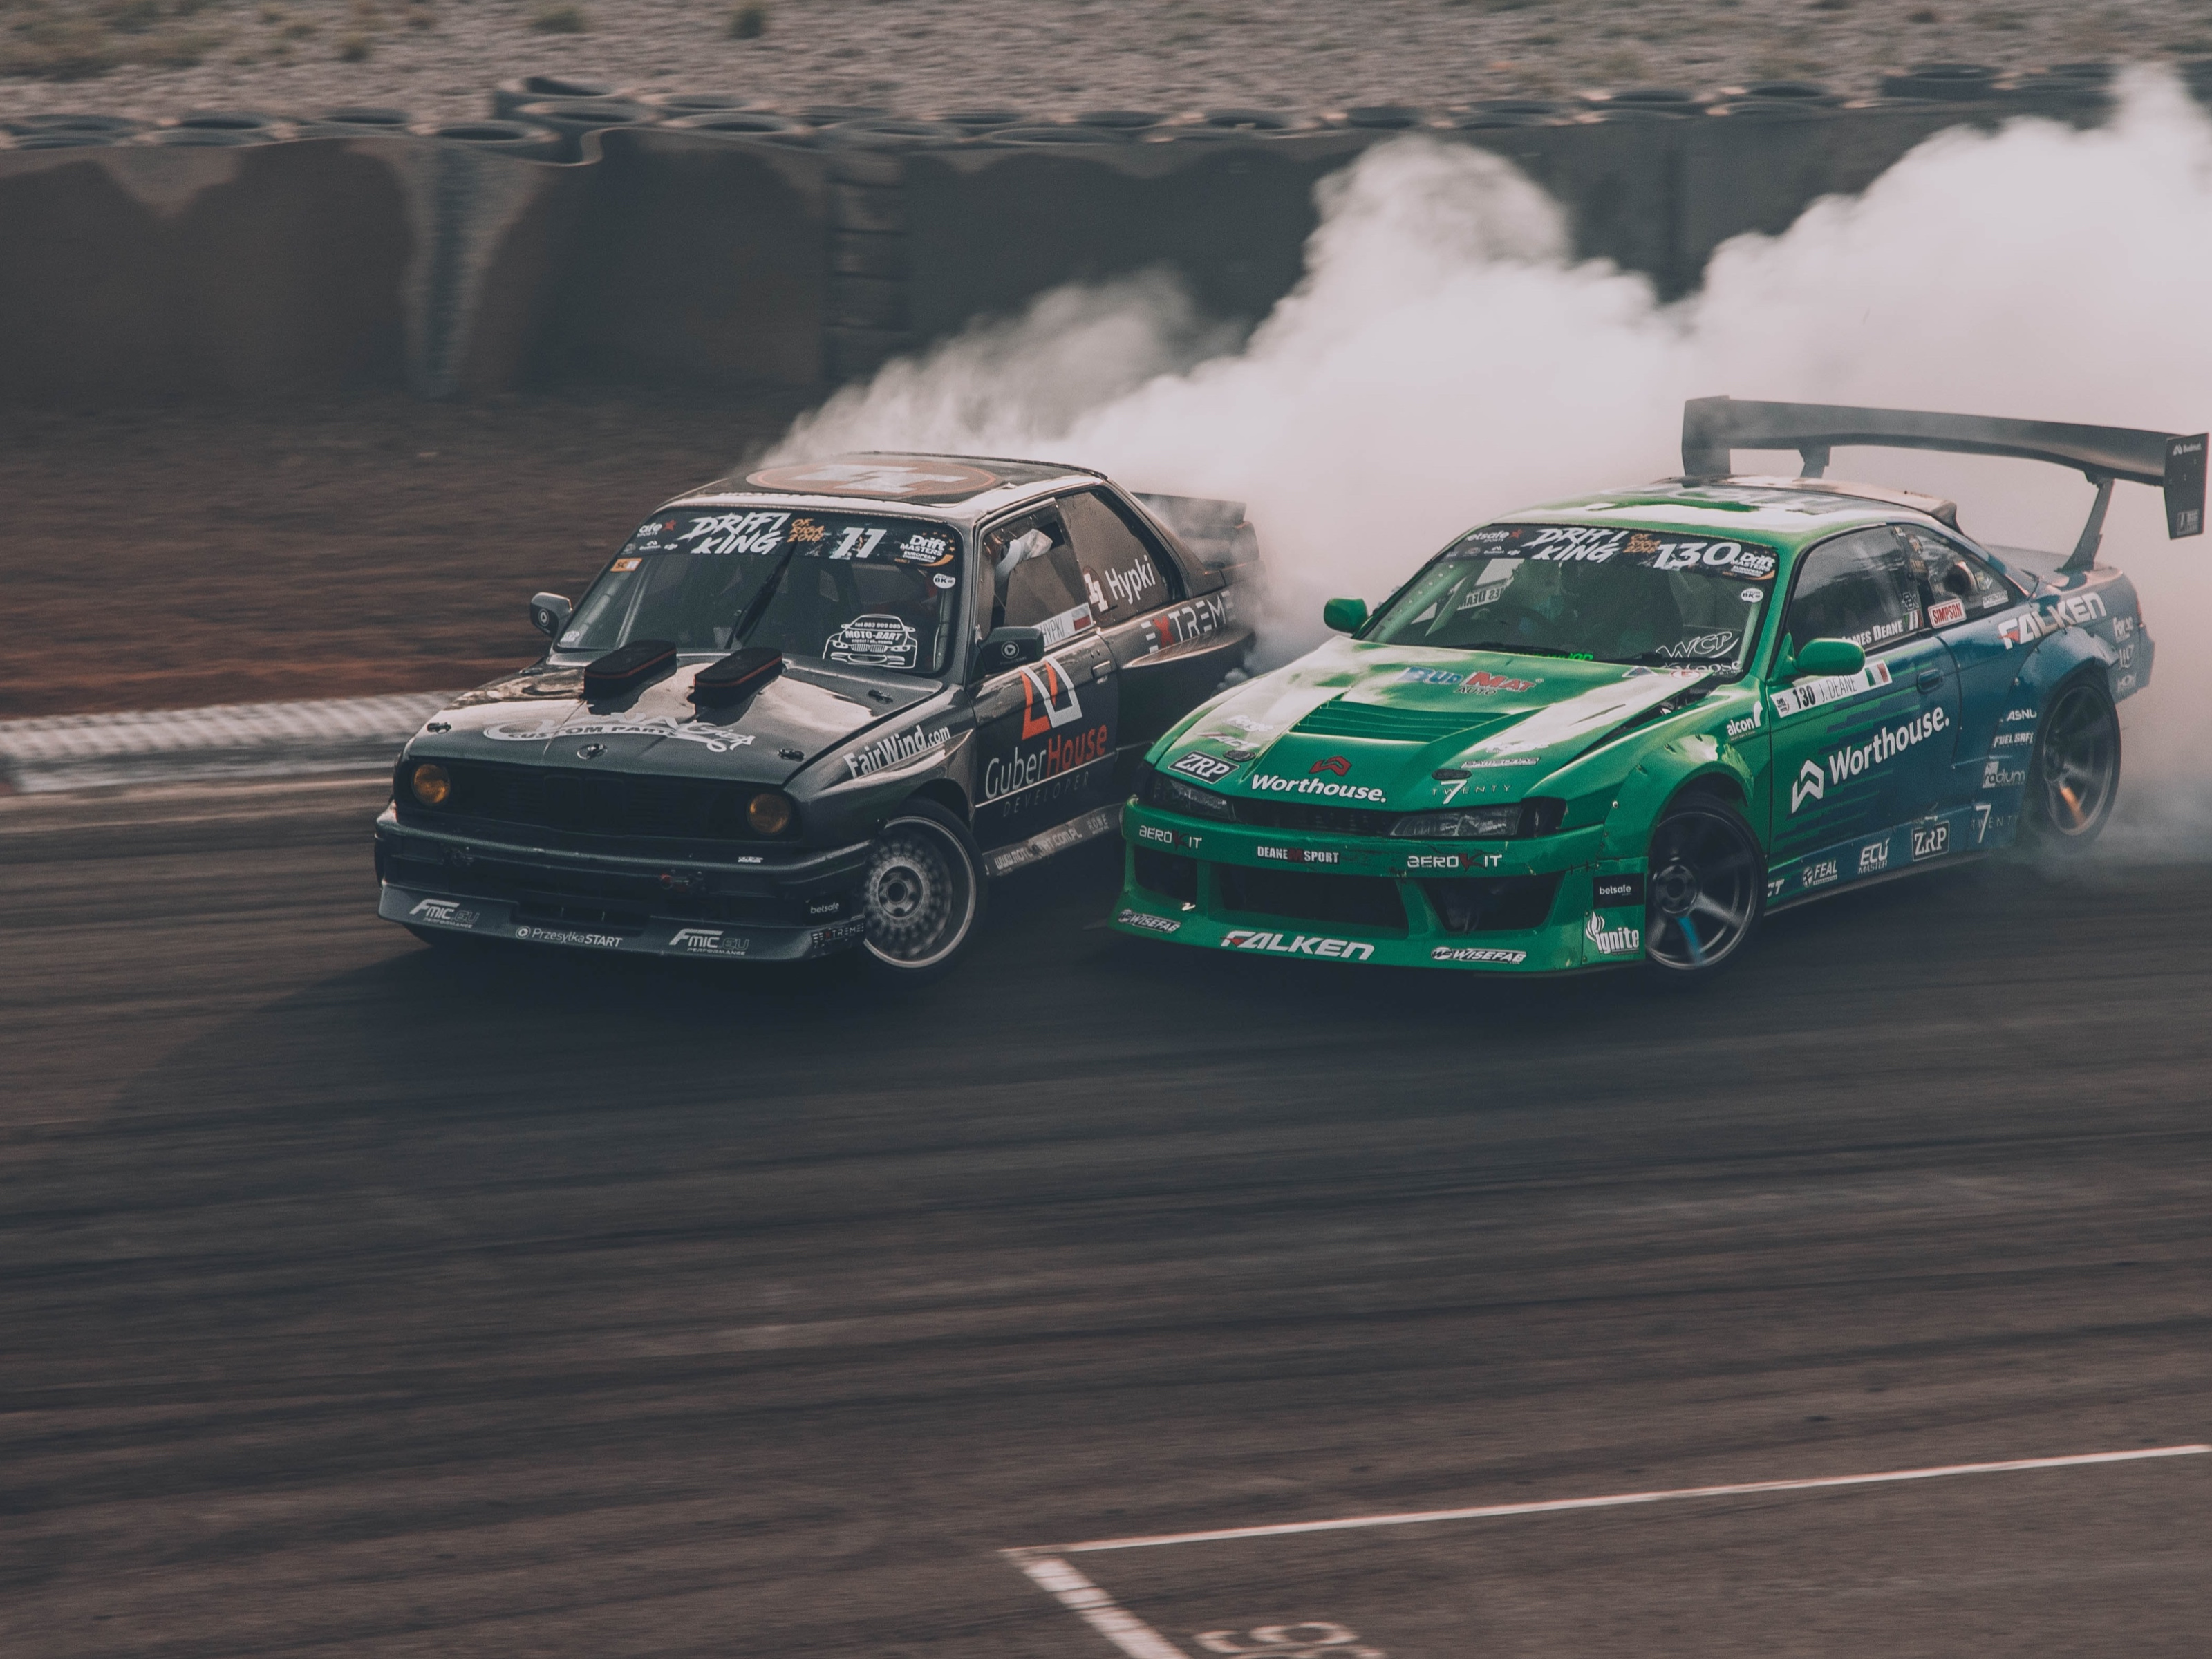 Two racing care are rushing to the finish line. Image credit: Ralph Blvmberg/Unsplash.